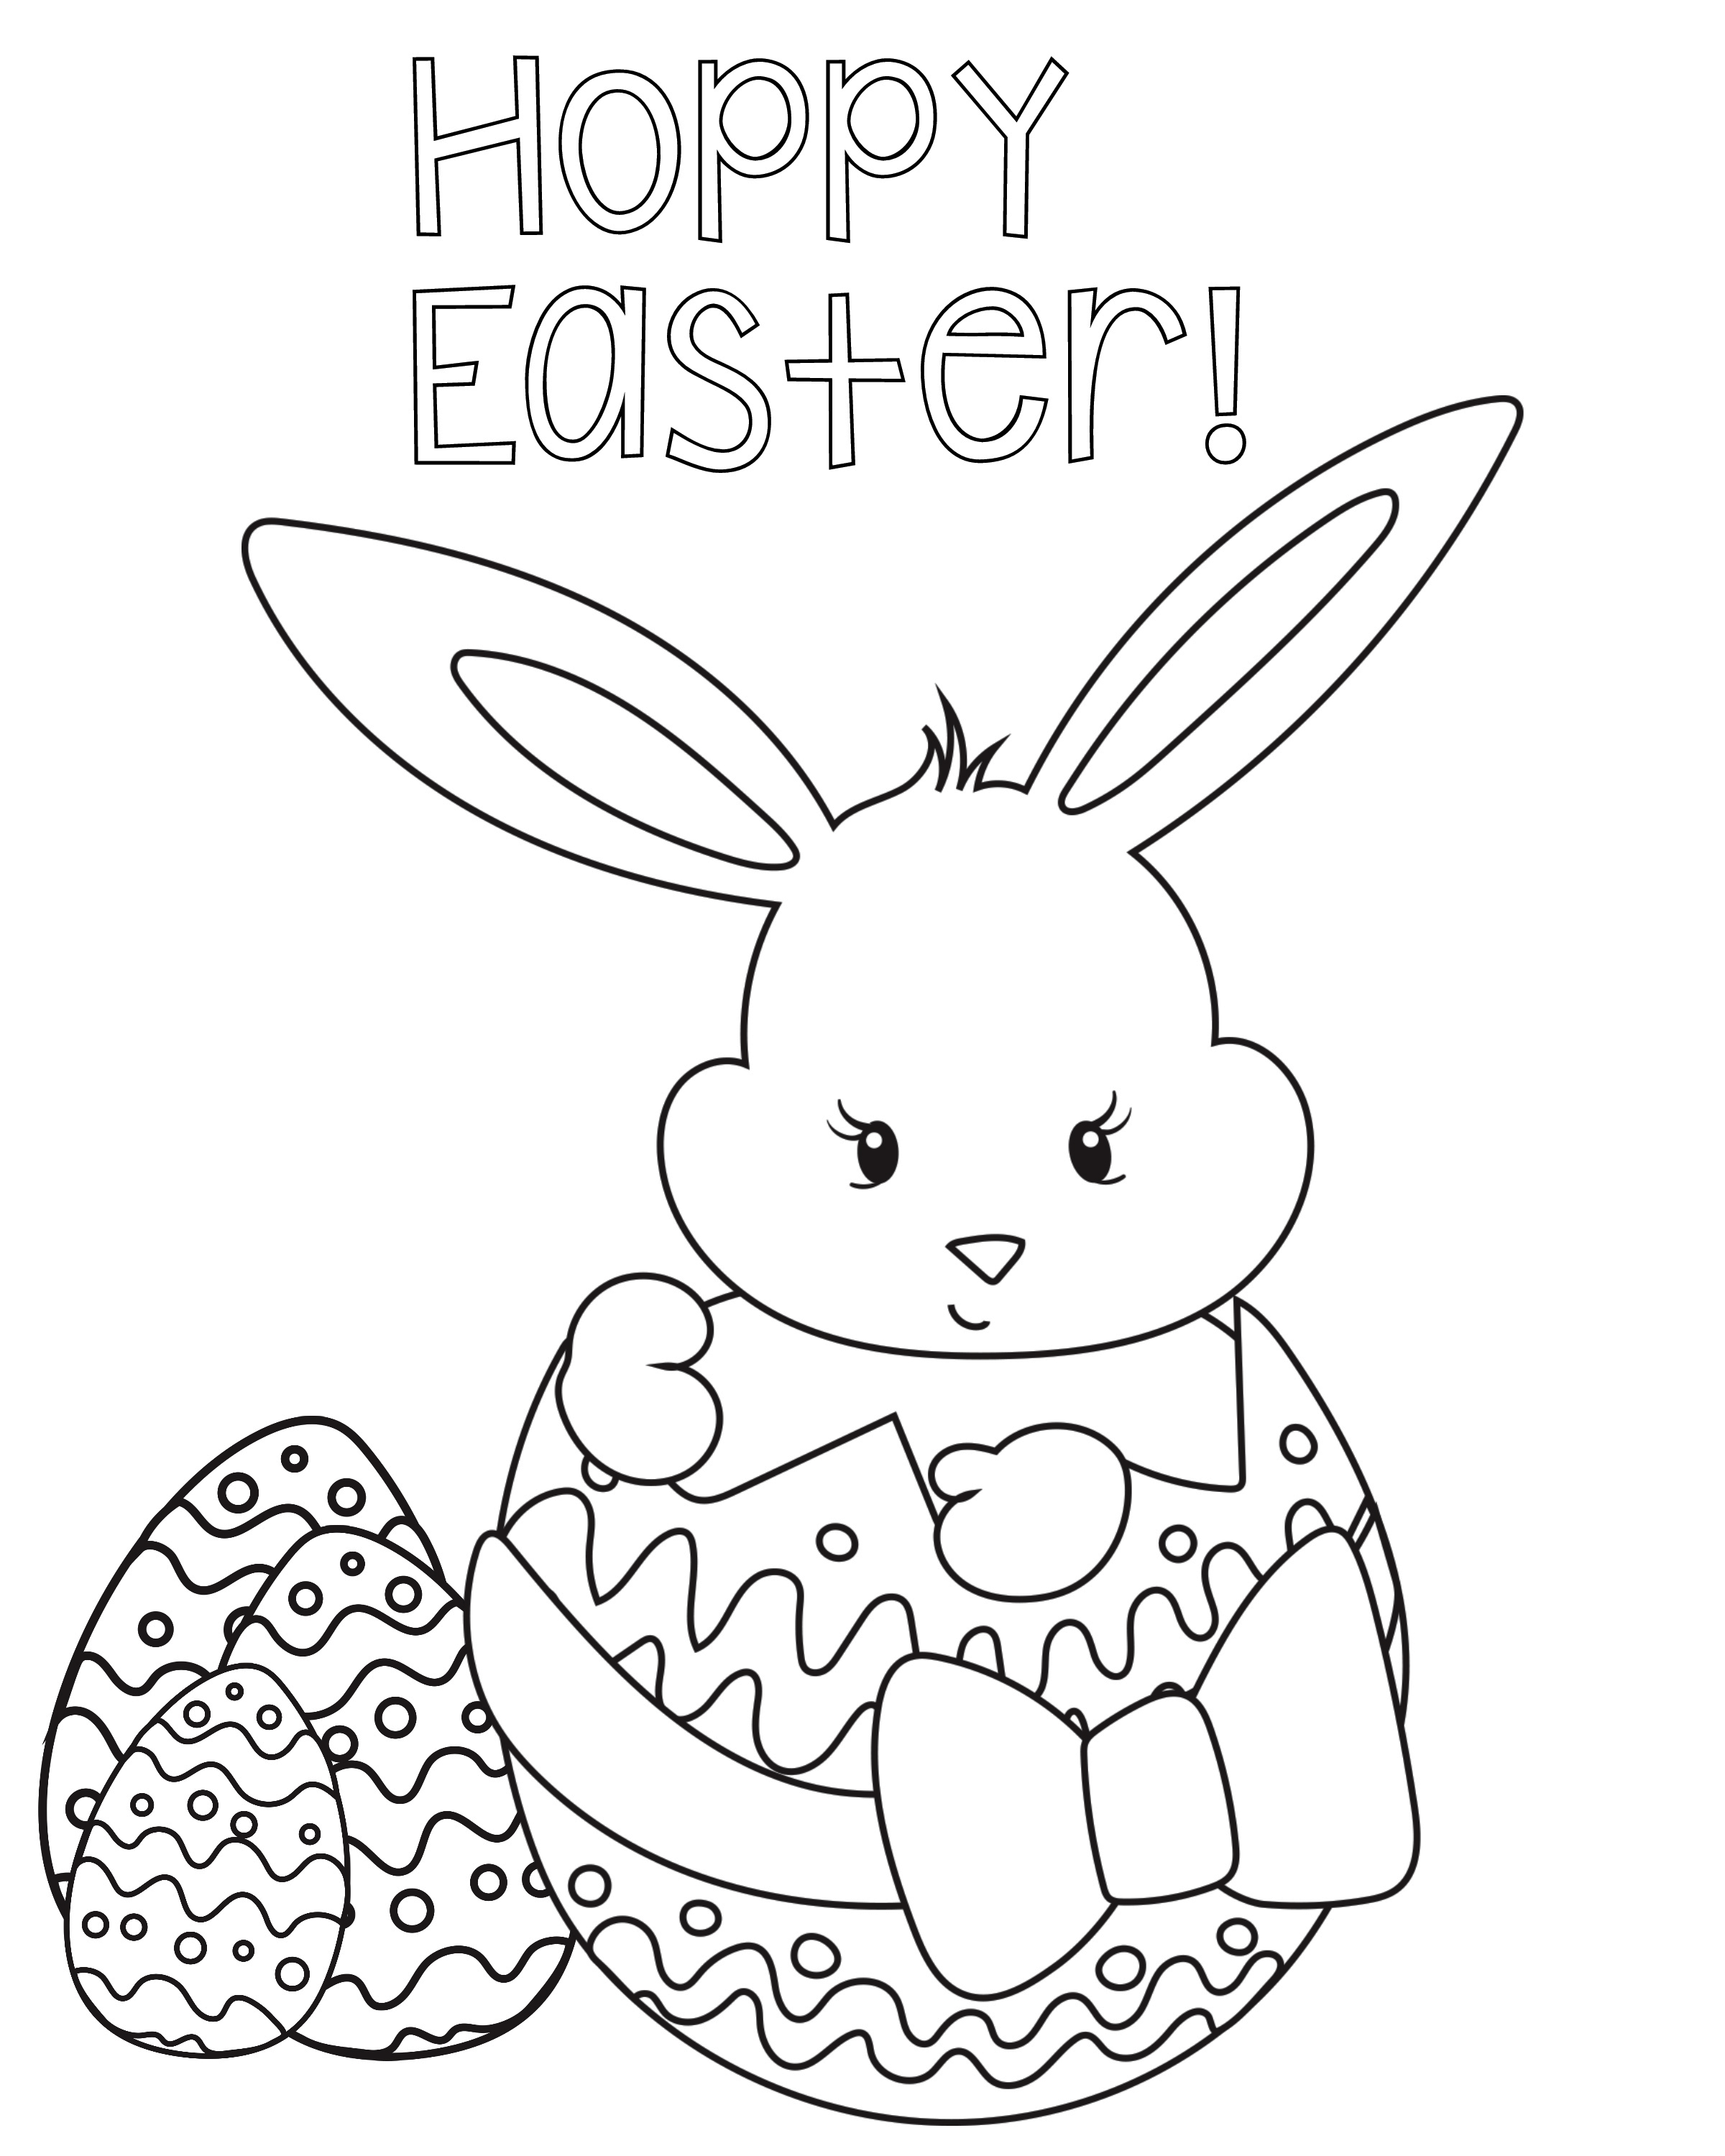 printable easter coloring pages for toddlers easter coloring pages best coloring pages for kids for toddlers coloring printable pages easter